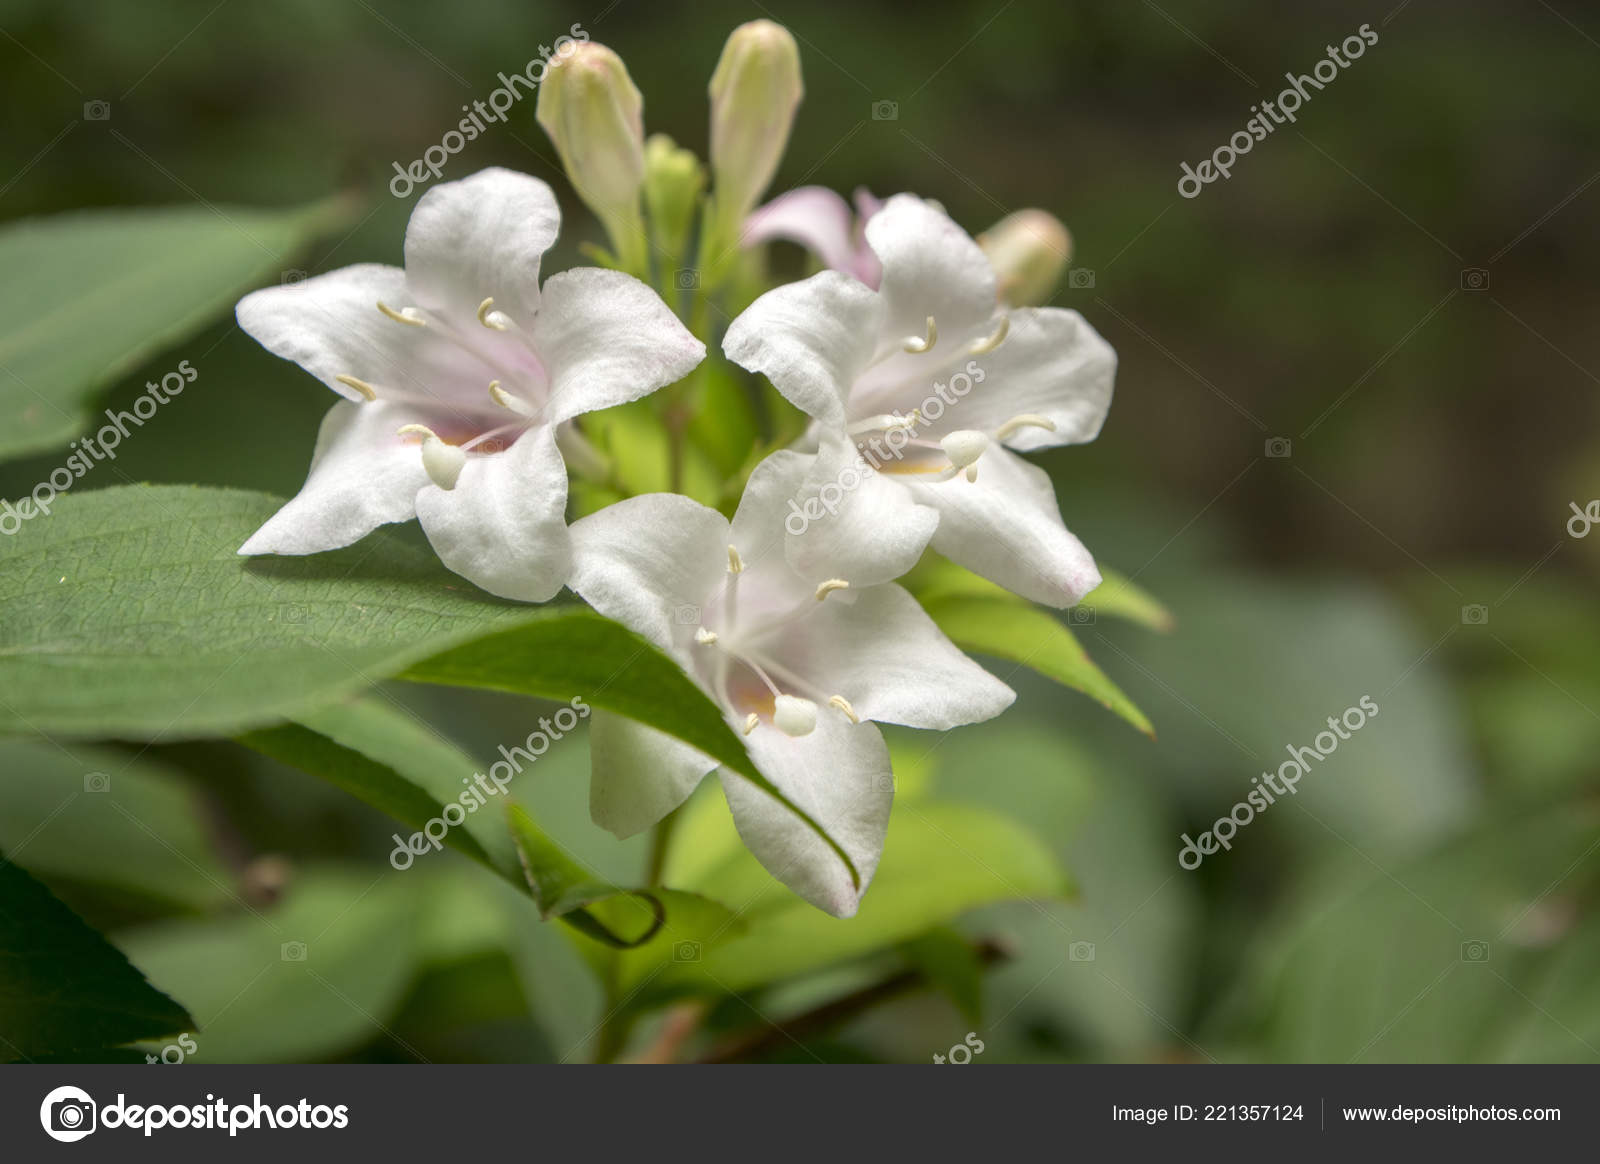 Weigelia Fiori Bianchi.Weigela Shrub White Pale Pink Flowers Branches Stock Photo